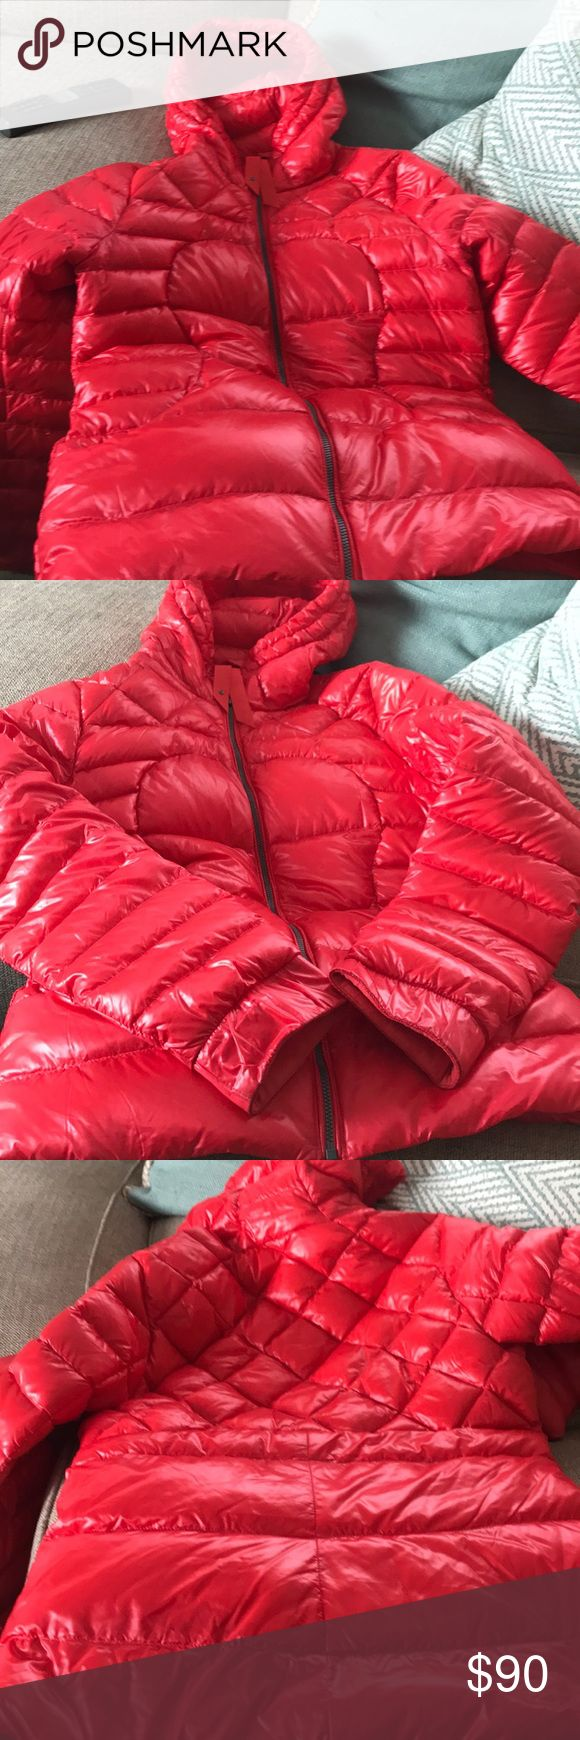 Never Worn!! Red Lulu Lemon Goose-Down Coat! Never worn! Great for spring or fall. Lightweight goose down hooded jacket. Don't pass up this deal! lululemon athletica Jackets & Coats